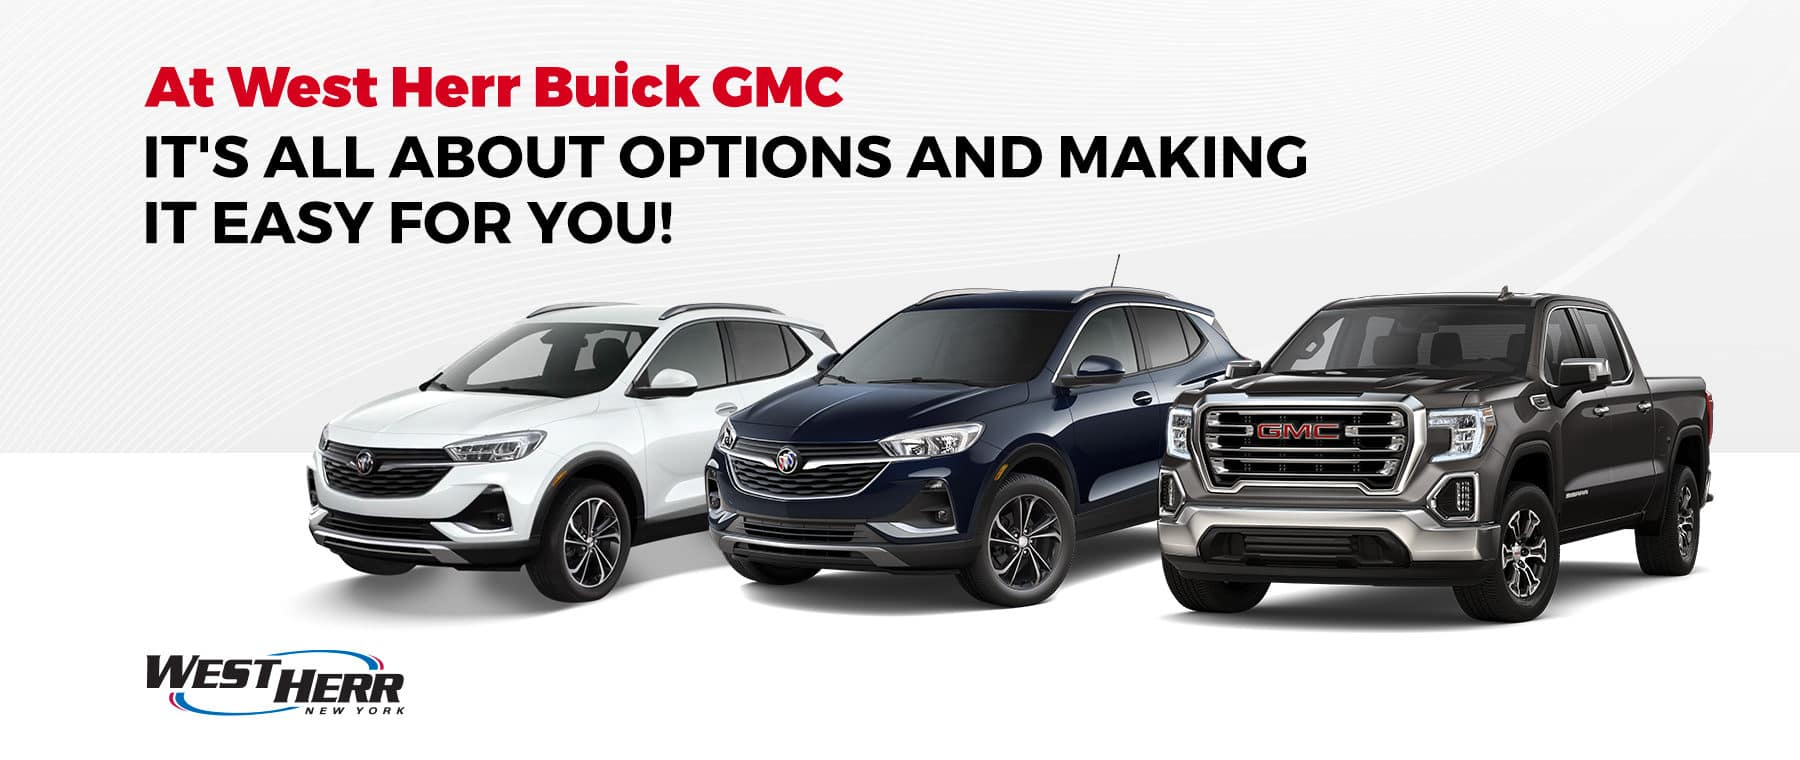 At West Herr Buick GMC, it's all about options and making it easy for you!